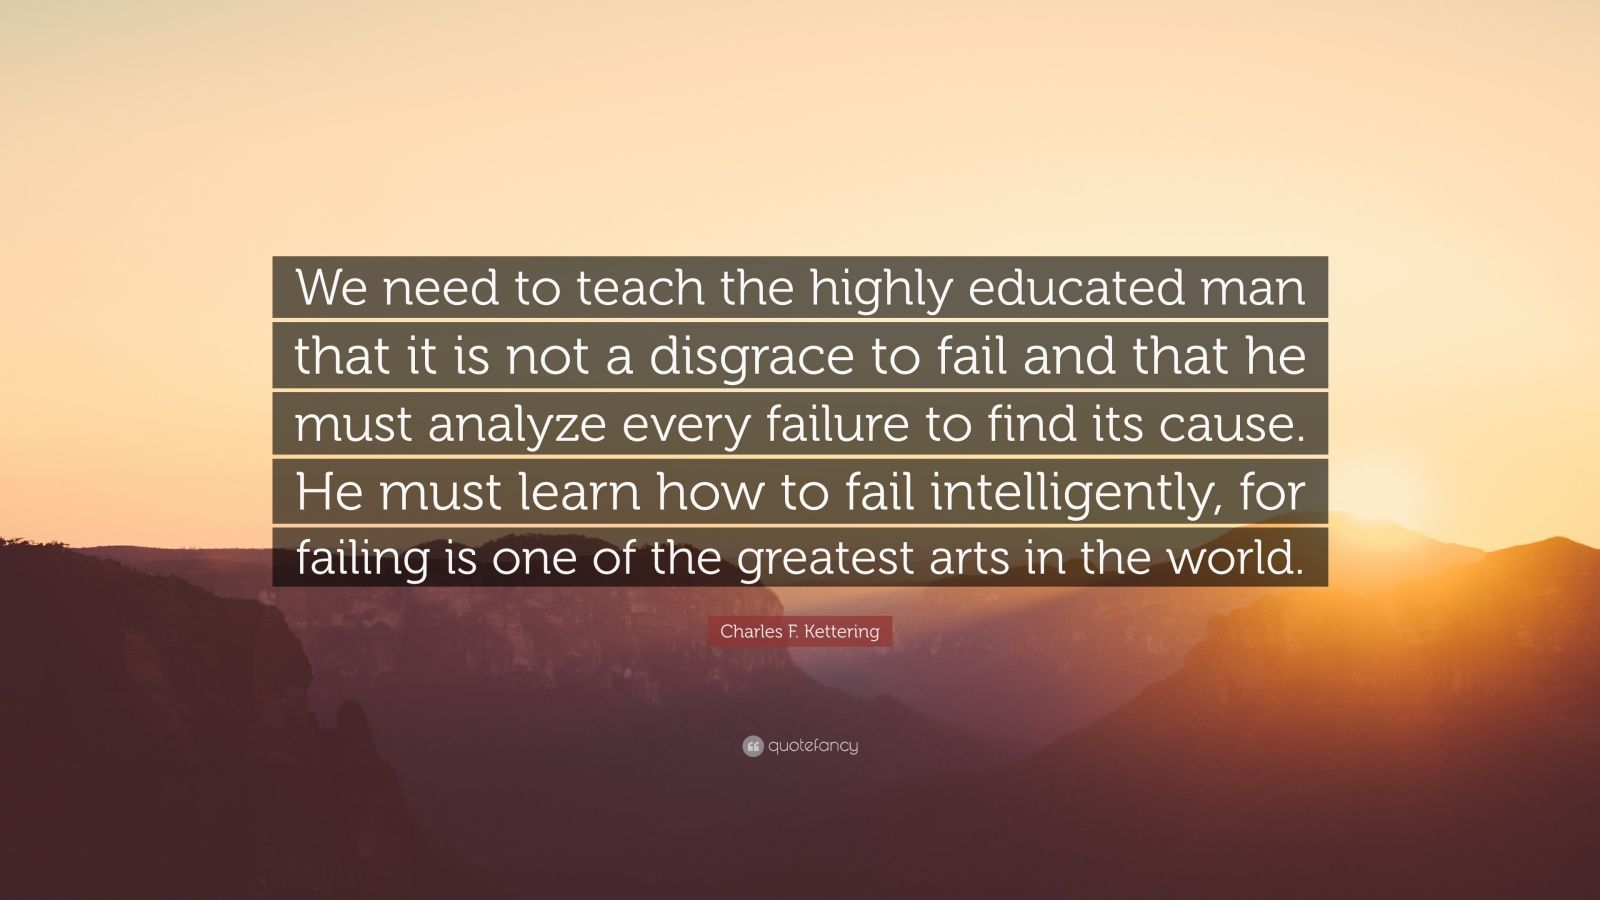 """Charles F. Kettering Quote: """"We need to teach the highly educated man that it is not a disgrace to fail and that he must analyze every failure to find its cause. He must learn how to fail intelligently, for failing is one of the greatest arts in the world."""""""